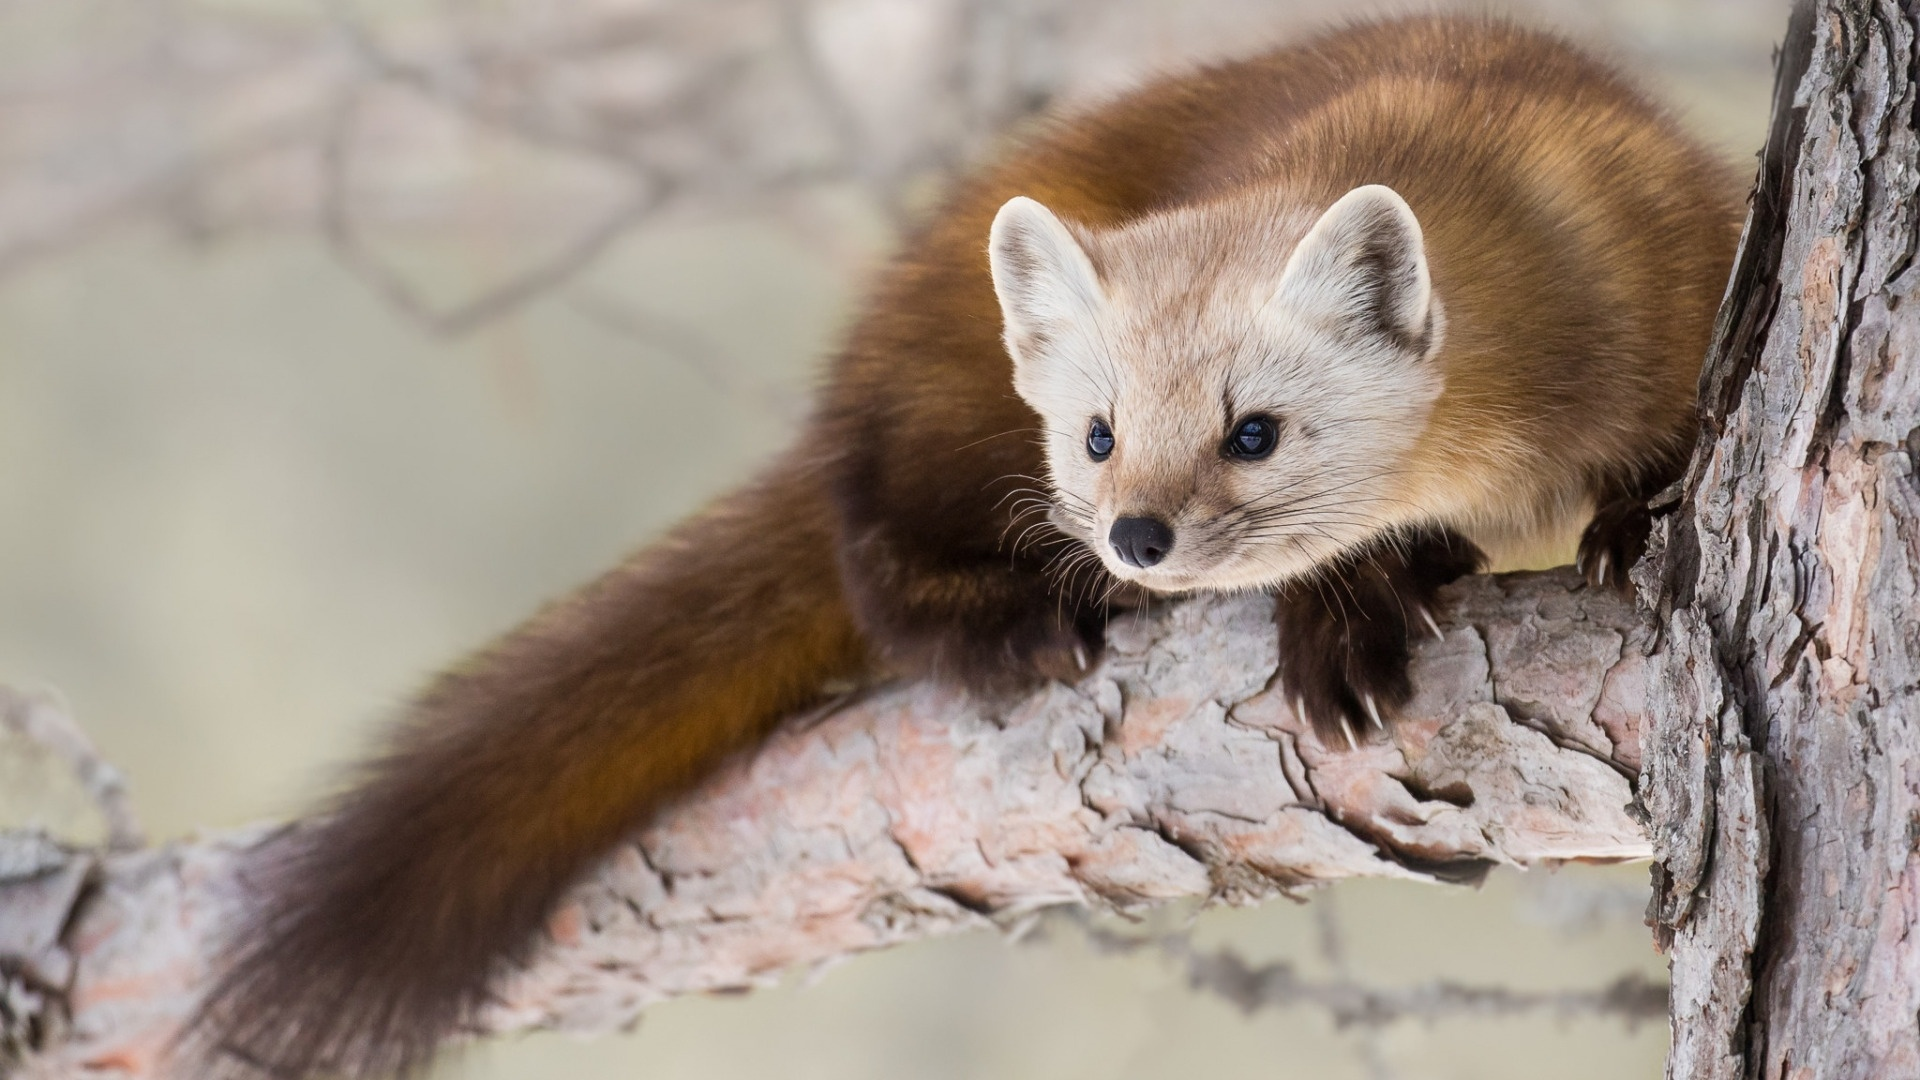 Marten Wallpaper theme